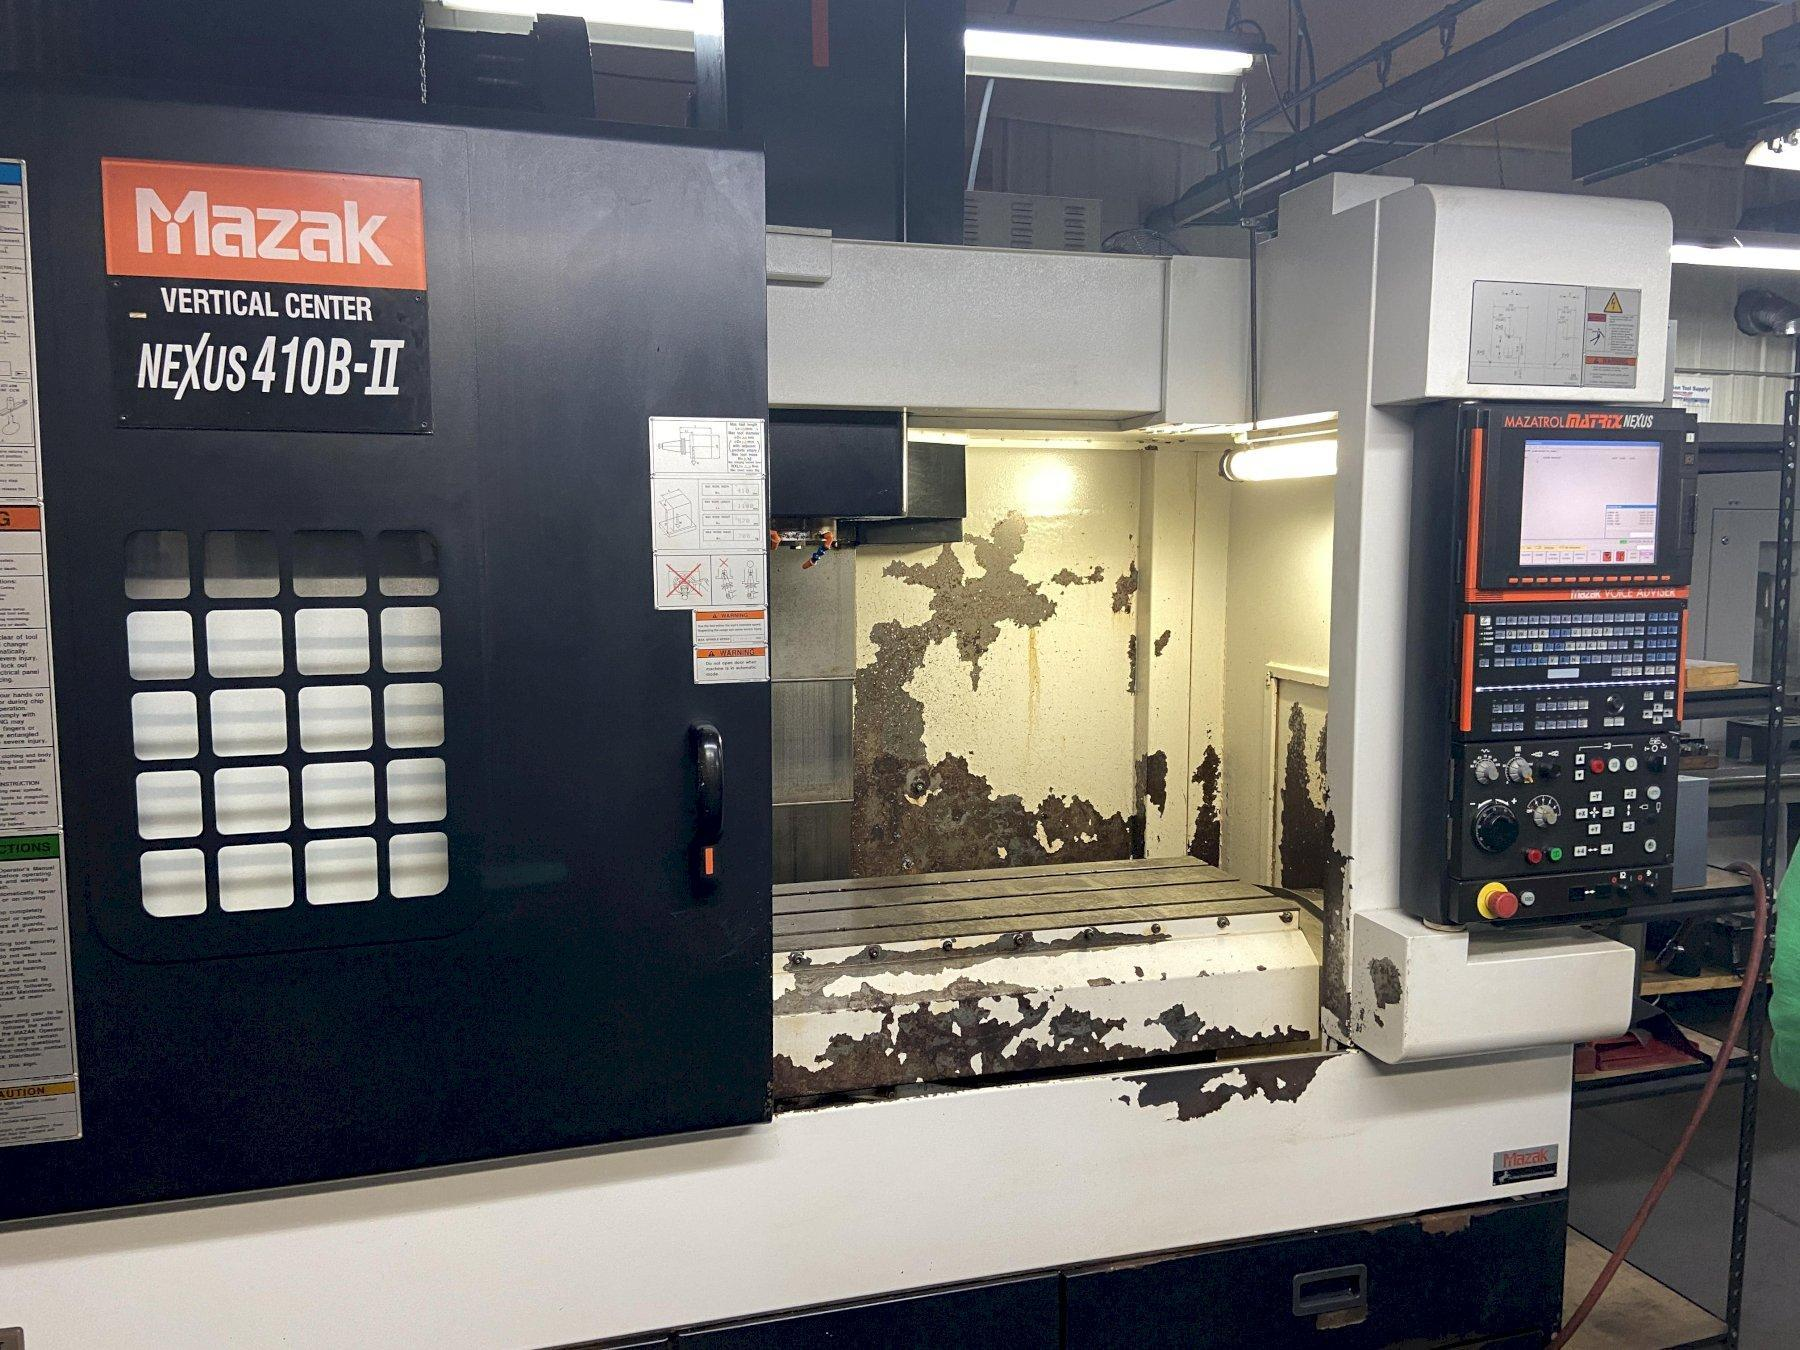 Mazak VCN410B-II CNC Vertical Machining Center, Nexus Control, 30